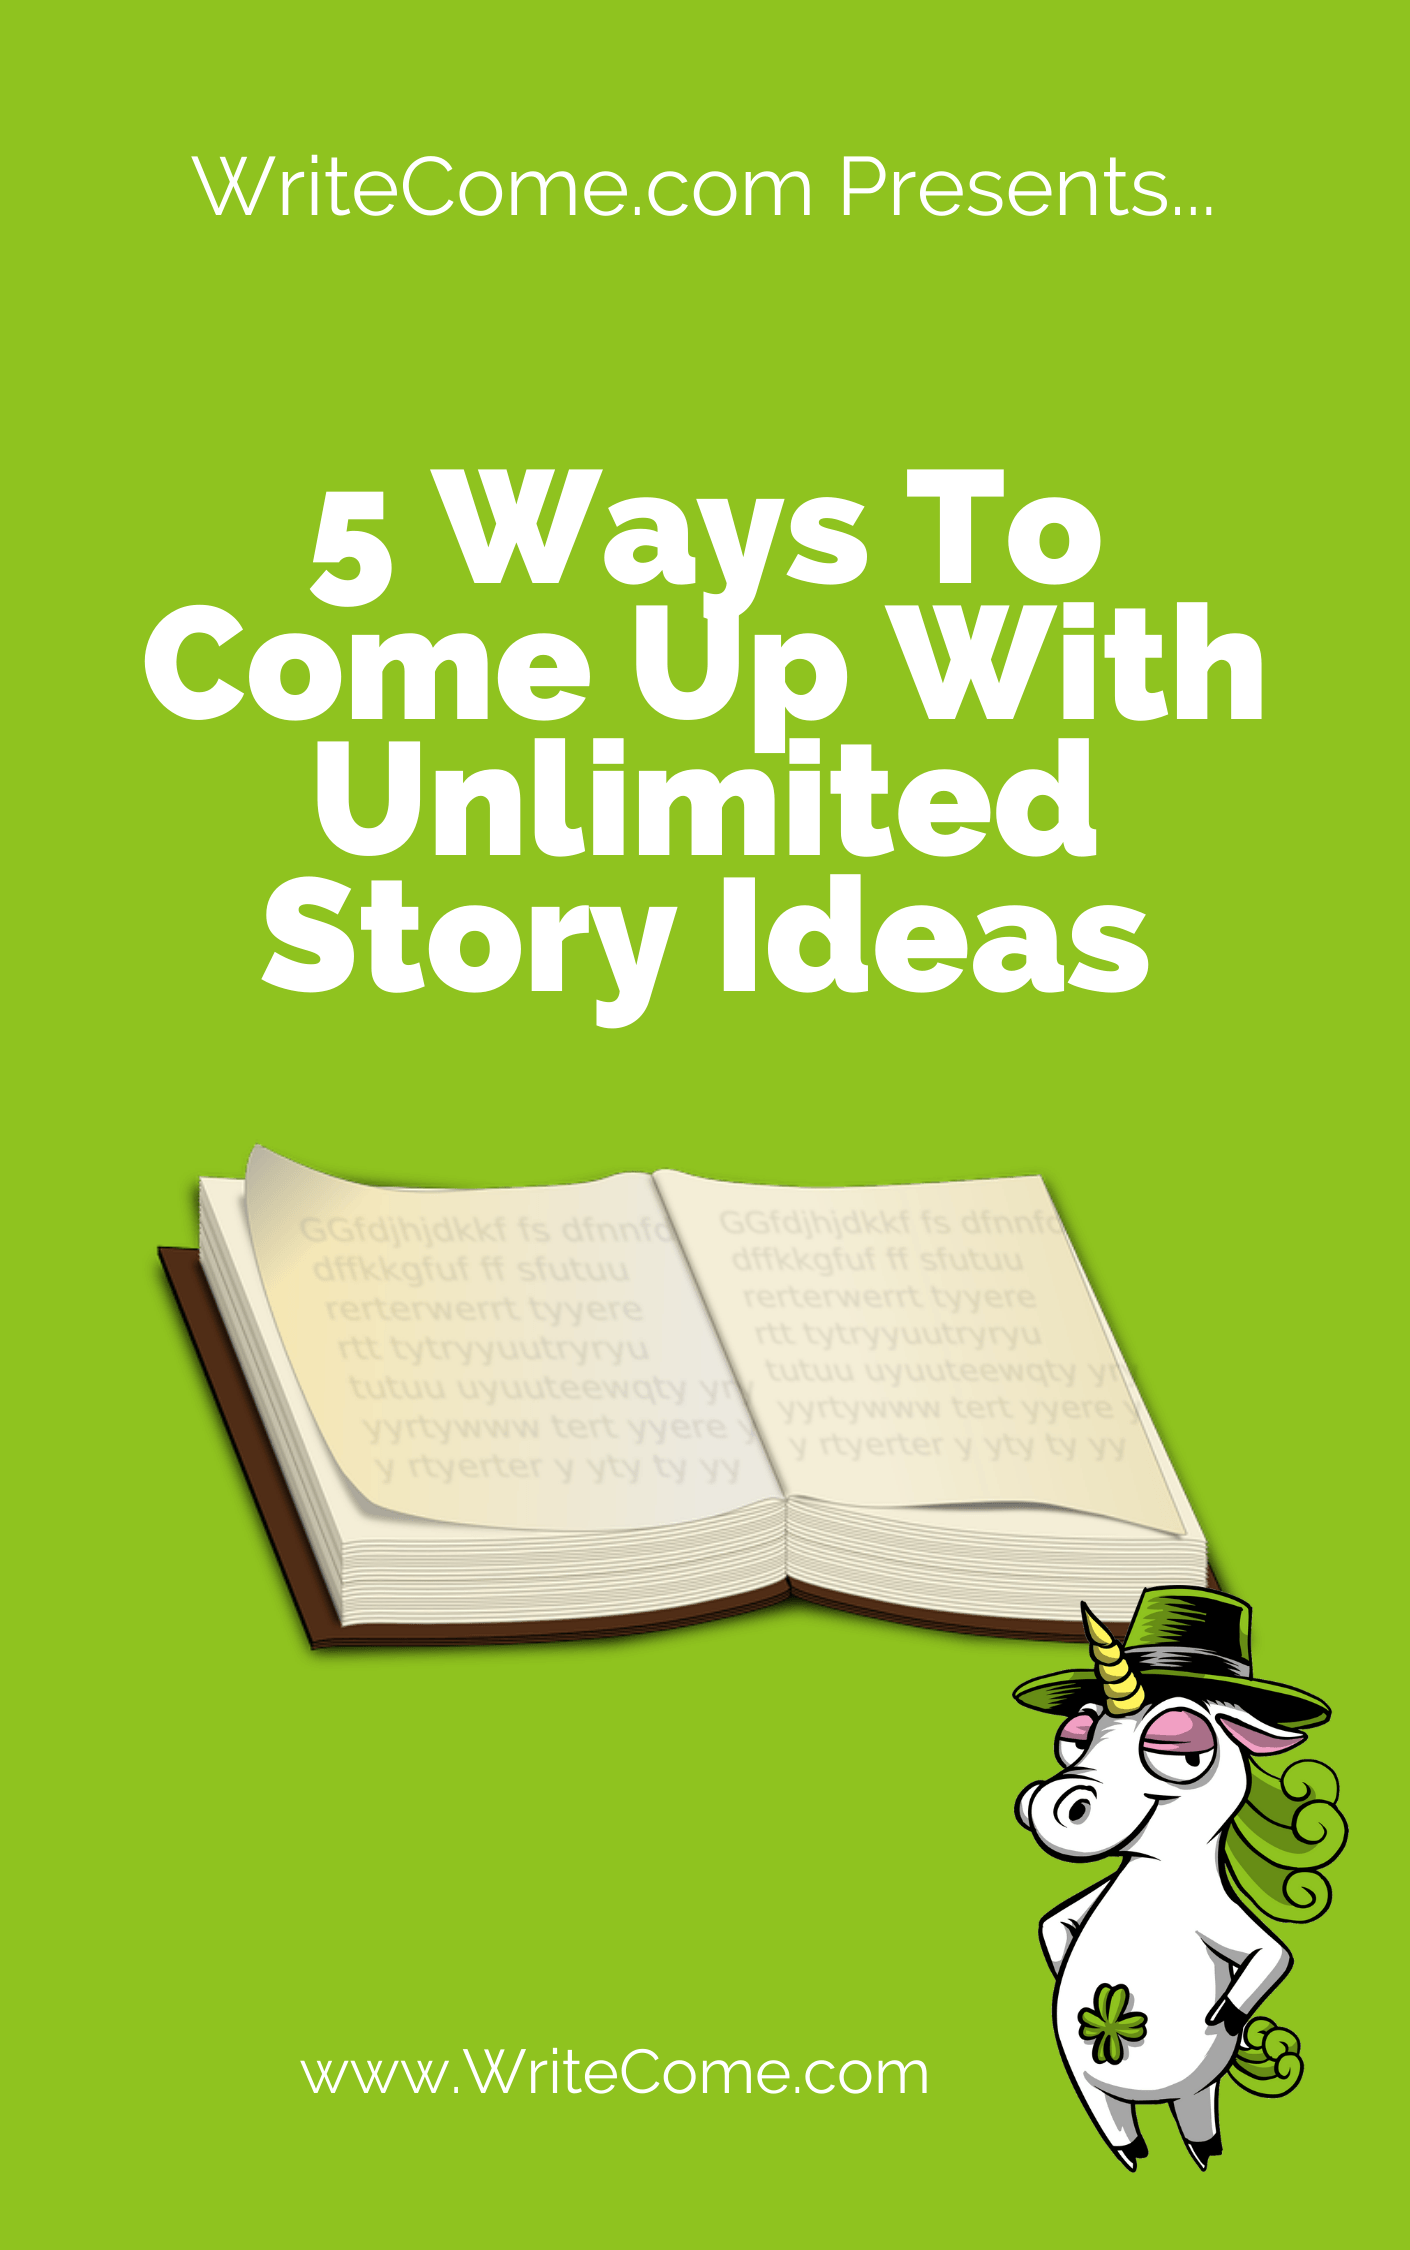 Free Micro Report - 5 Ways To Come Up With Unlimited Story Ideas